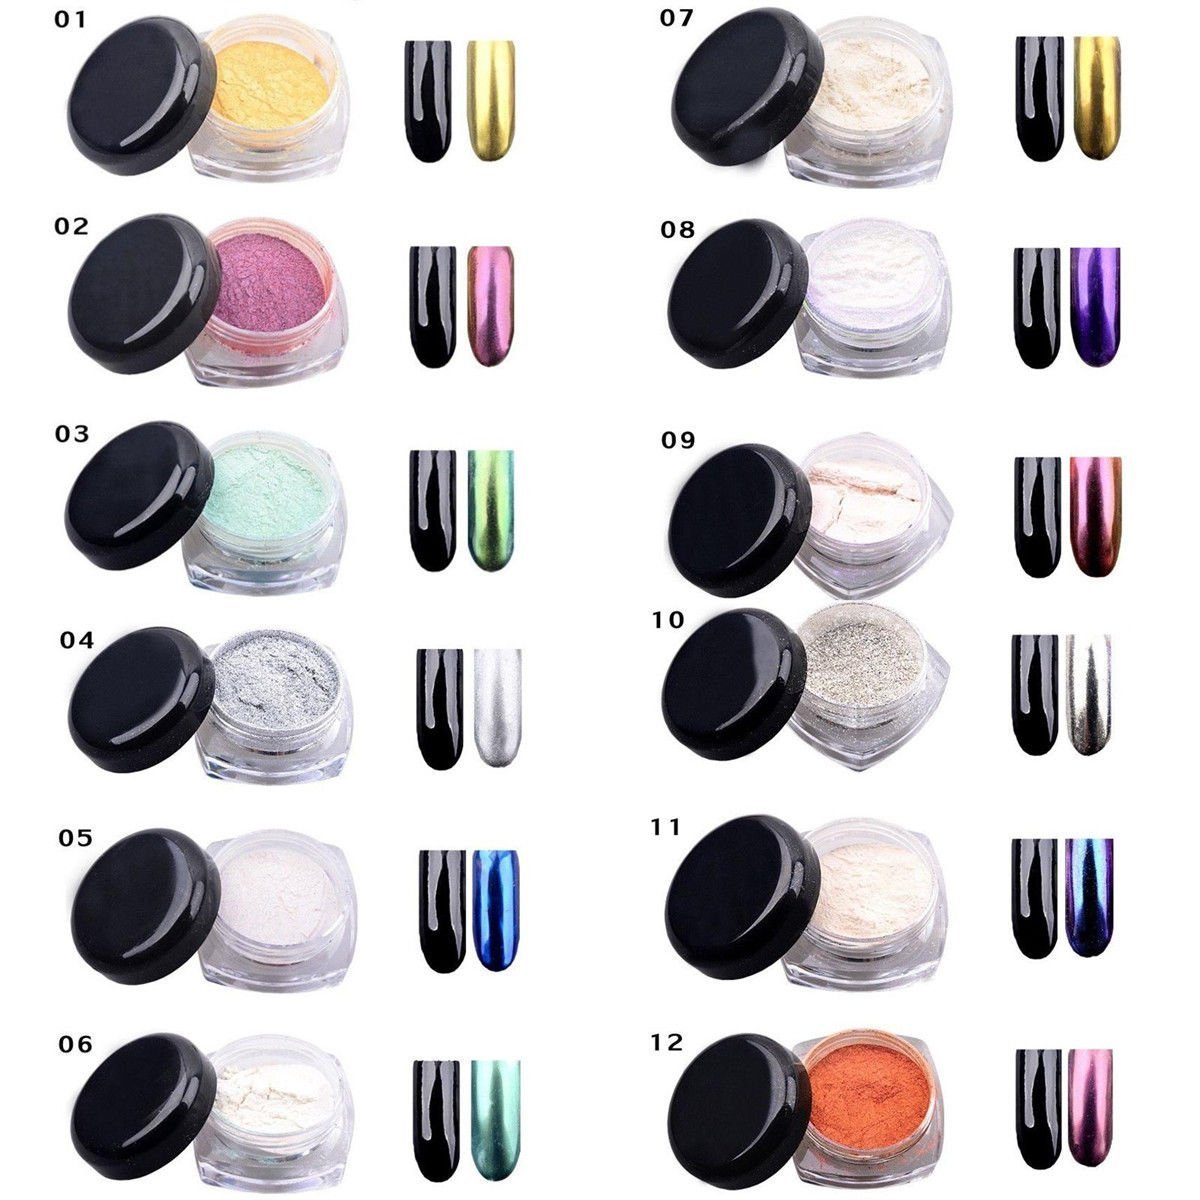 ZJchao 1g/Box Holo Pure Powder Holographic Bright Shinning Magic Mirror Laser Nail Powder Nail Glitter Rainbow Pigment Manicure Chrome Pigments With 2 nail brushes (1pcs)